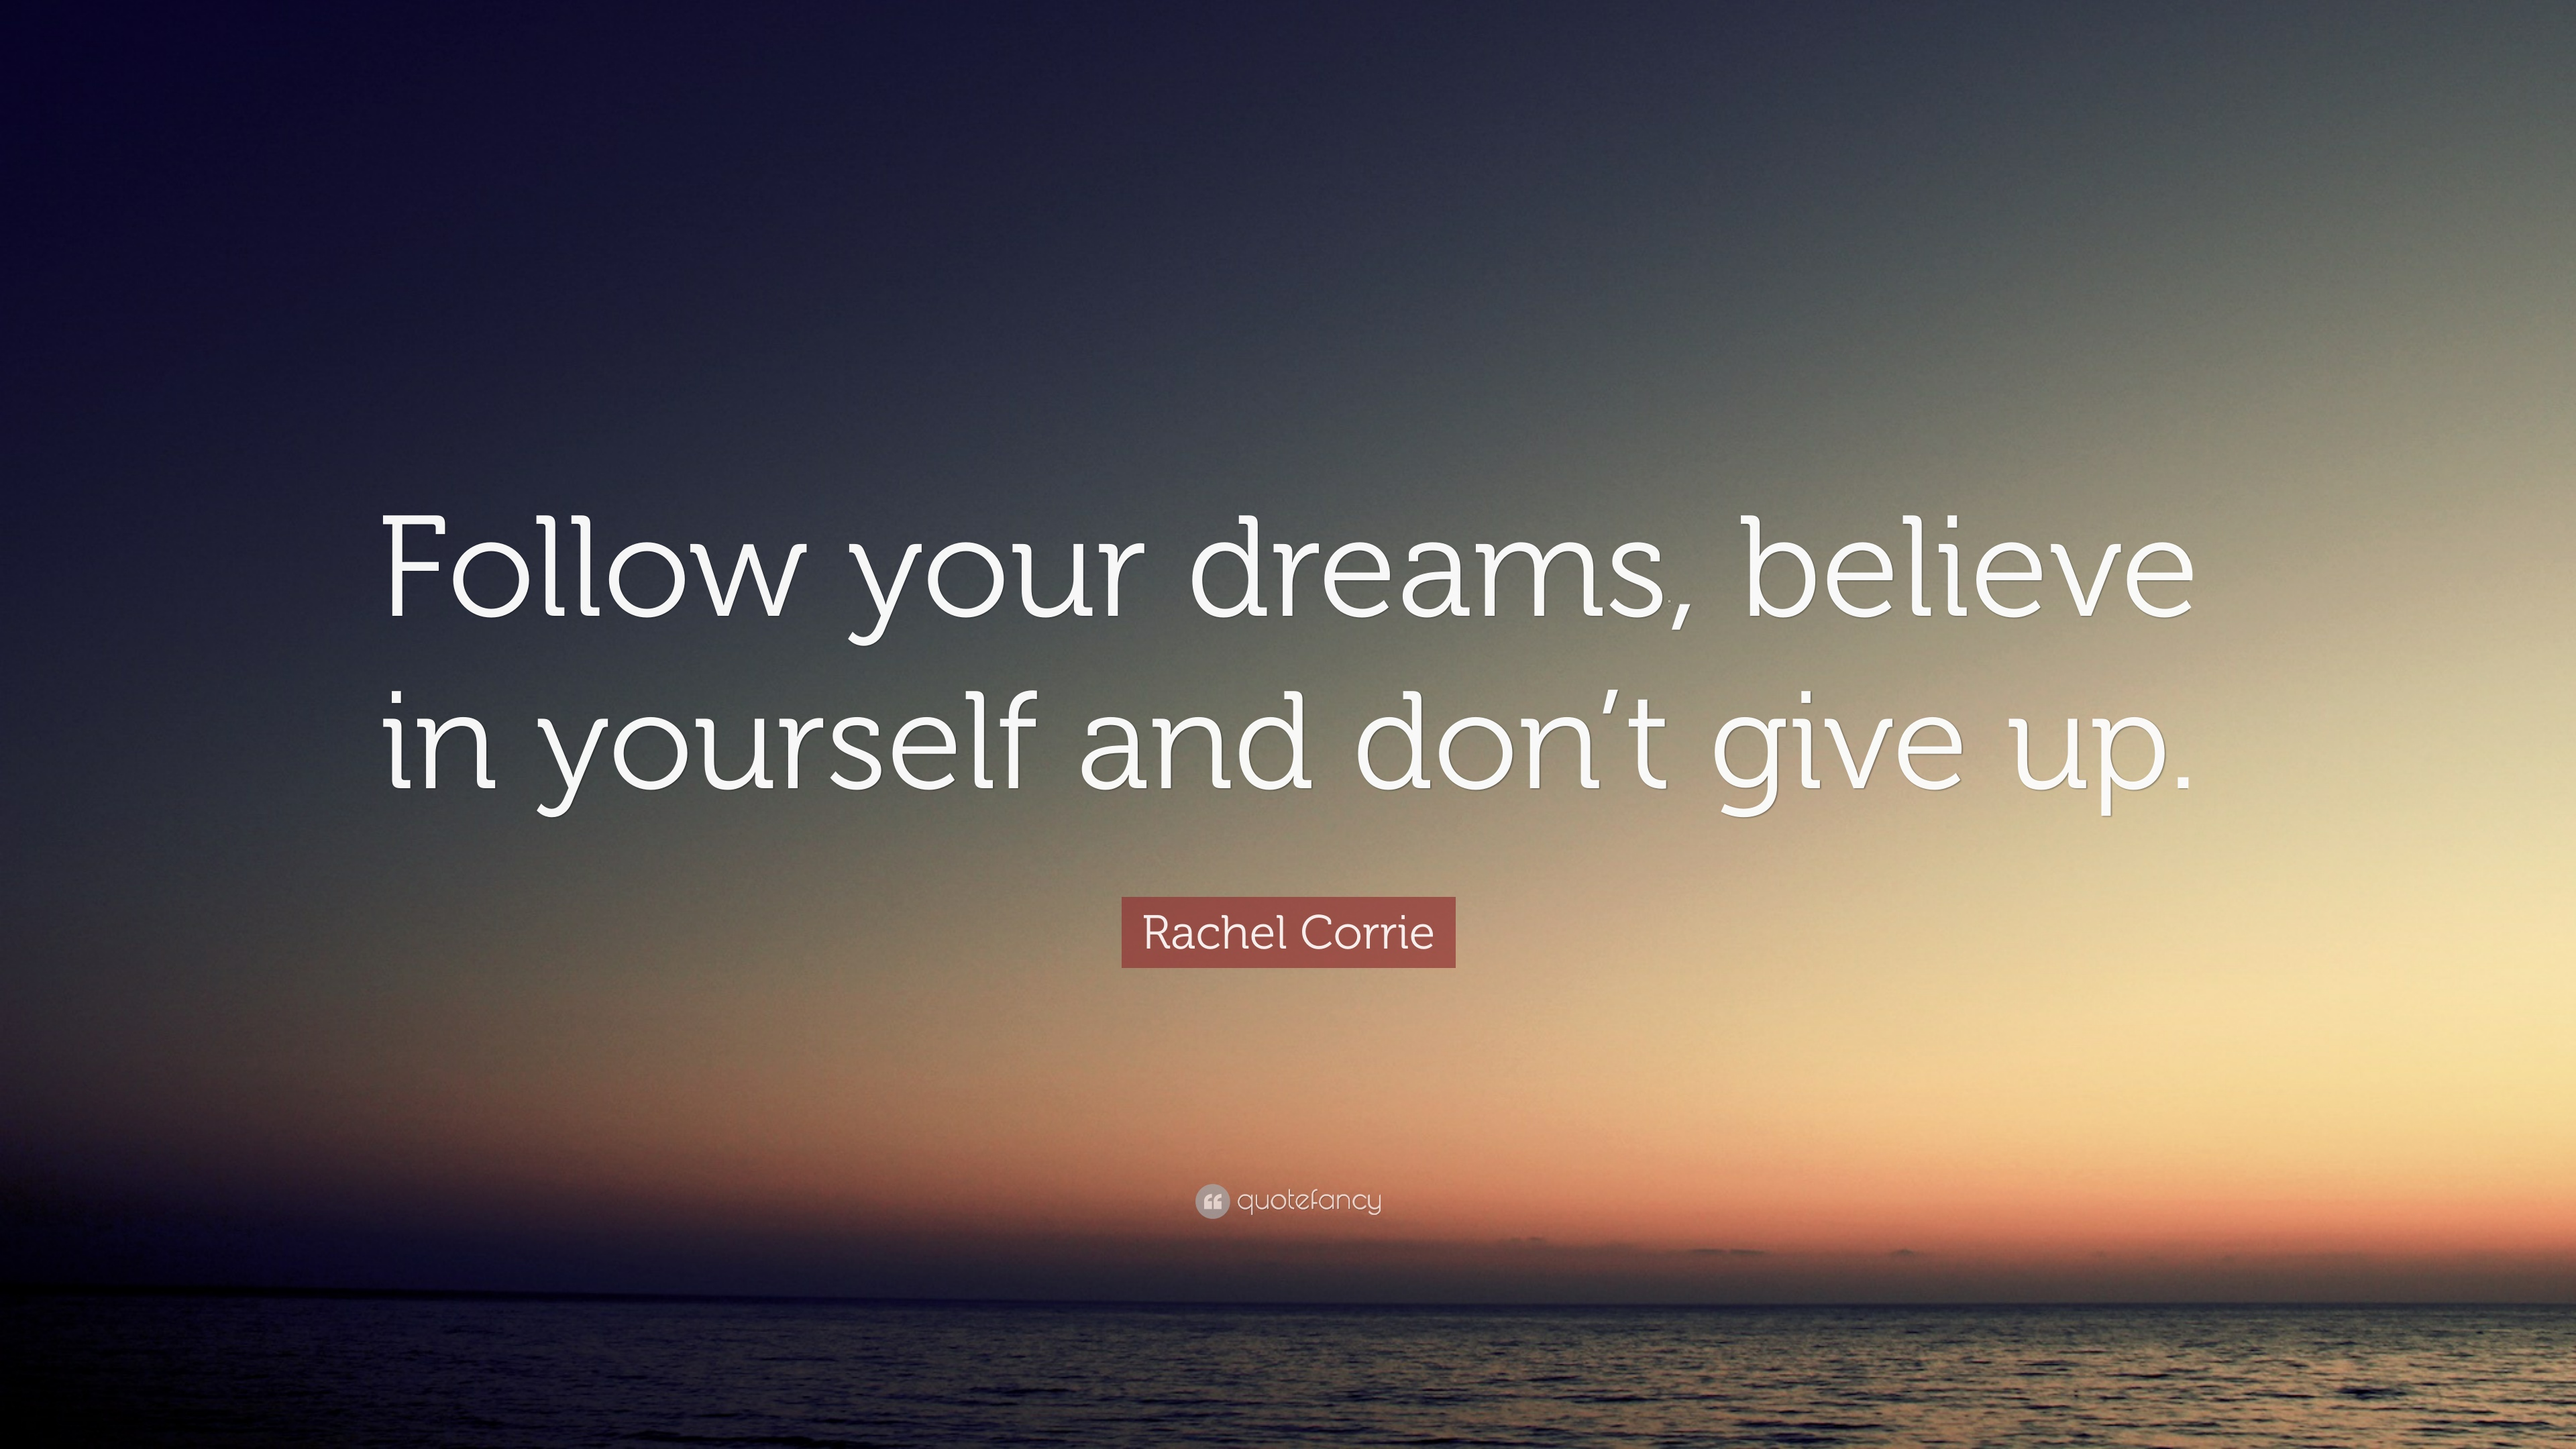 Rachel Corrie Quote Follow Your Dreams Believe In Yourself And Dont